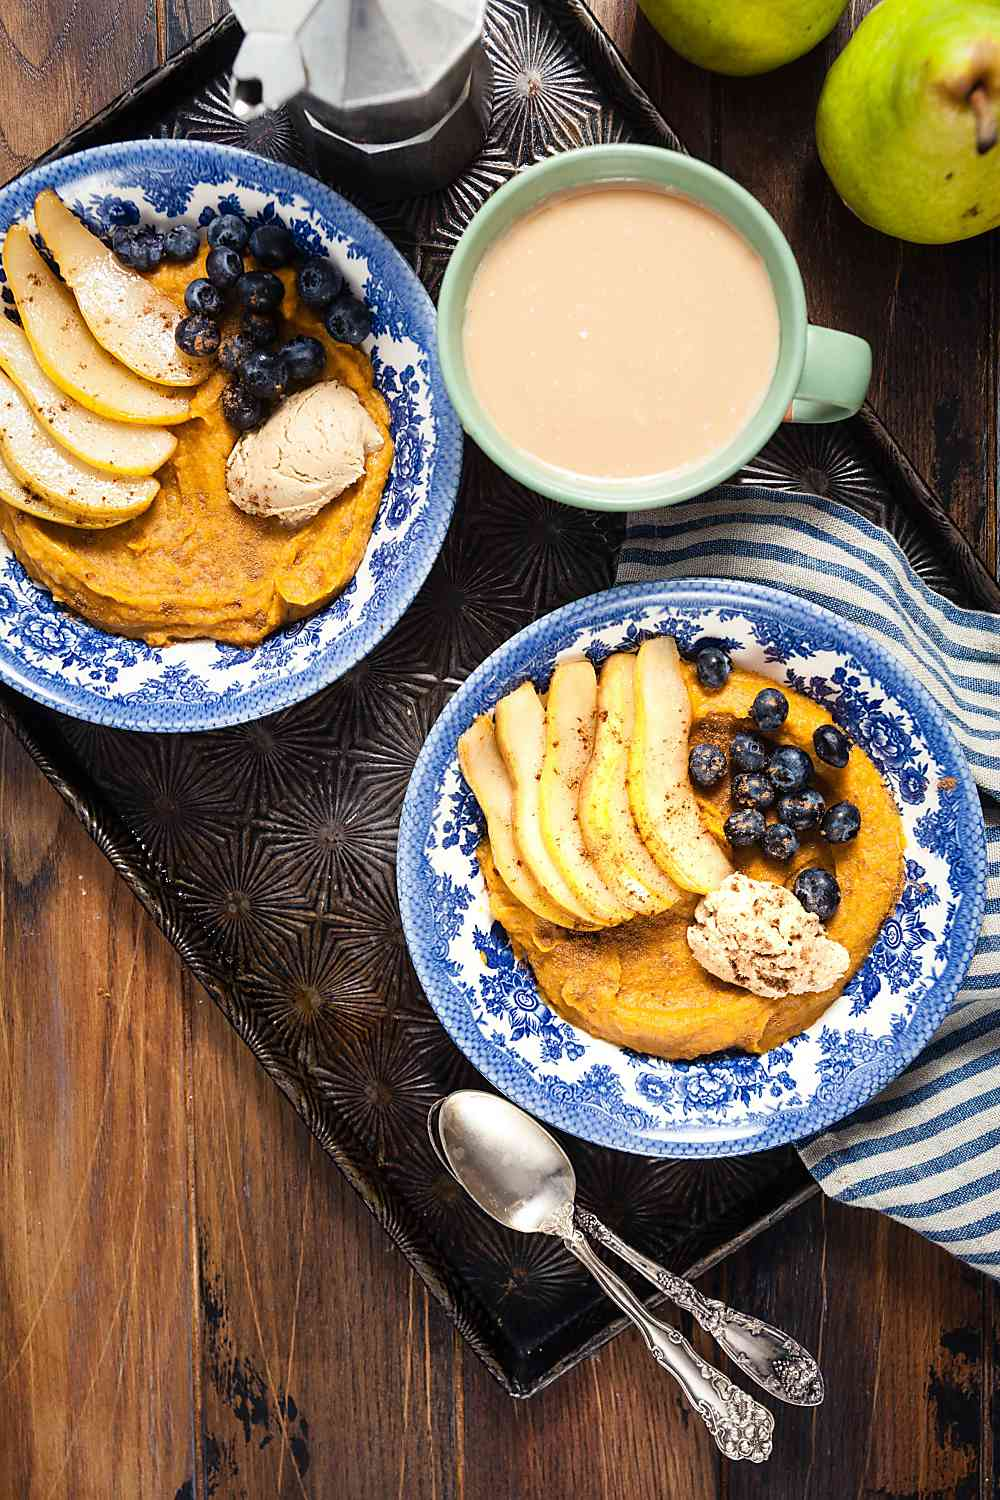 Sweet Potato Breakfast Bowls with Brown Sugar Pears - 10 minute recipe